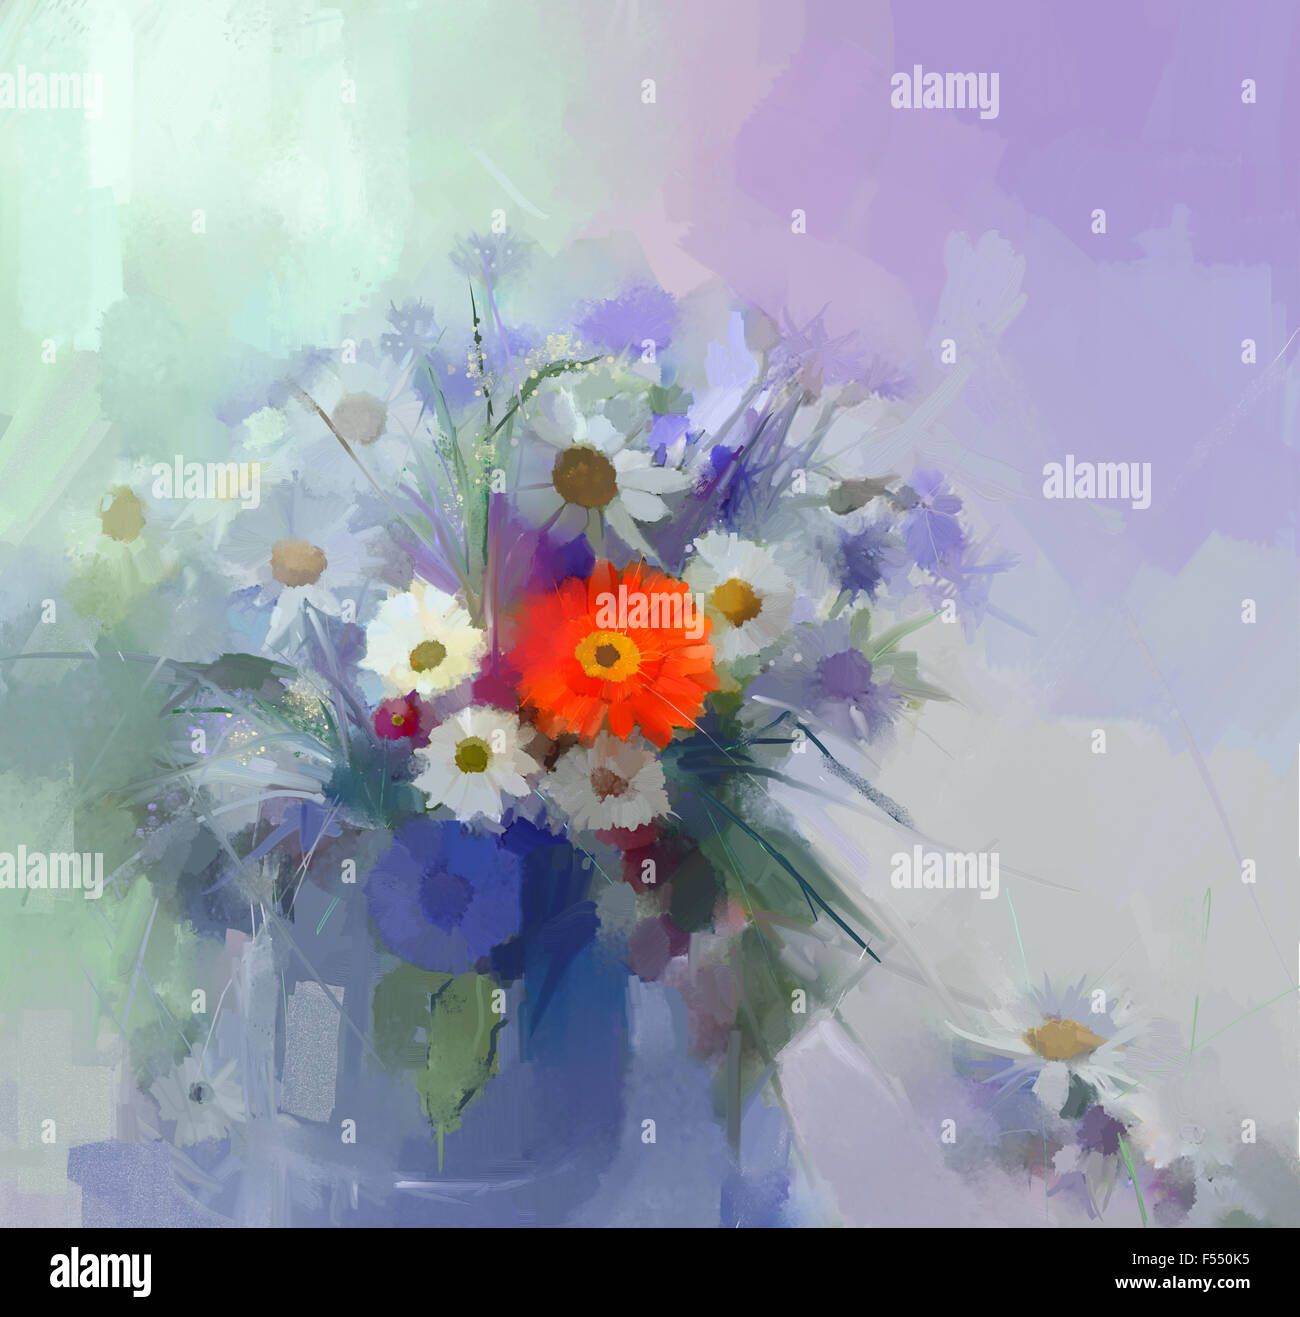 Bouquet flowers oil painting stock photos bouquet flowers oil oil painting still life bouquet flowers in vase stock image izmirmasajfo